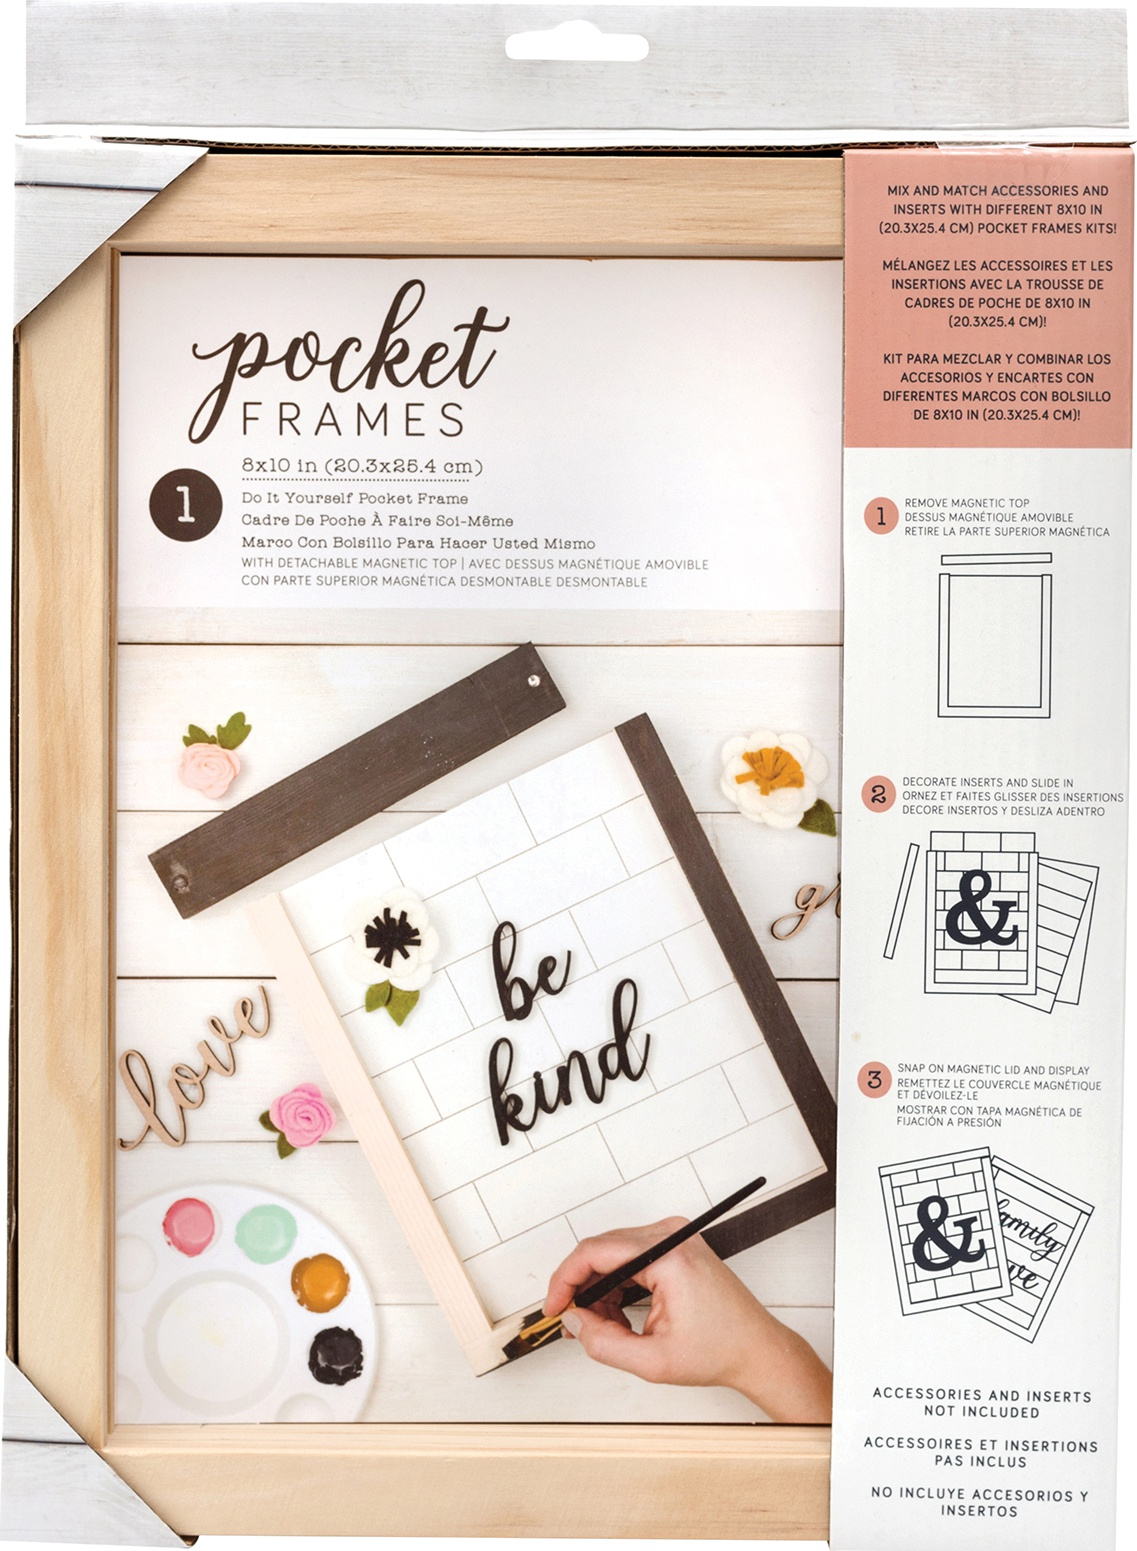 American Crafts Pocket Frames 8X10-Do-It-Yourself